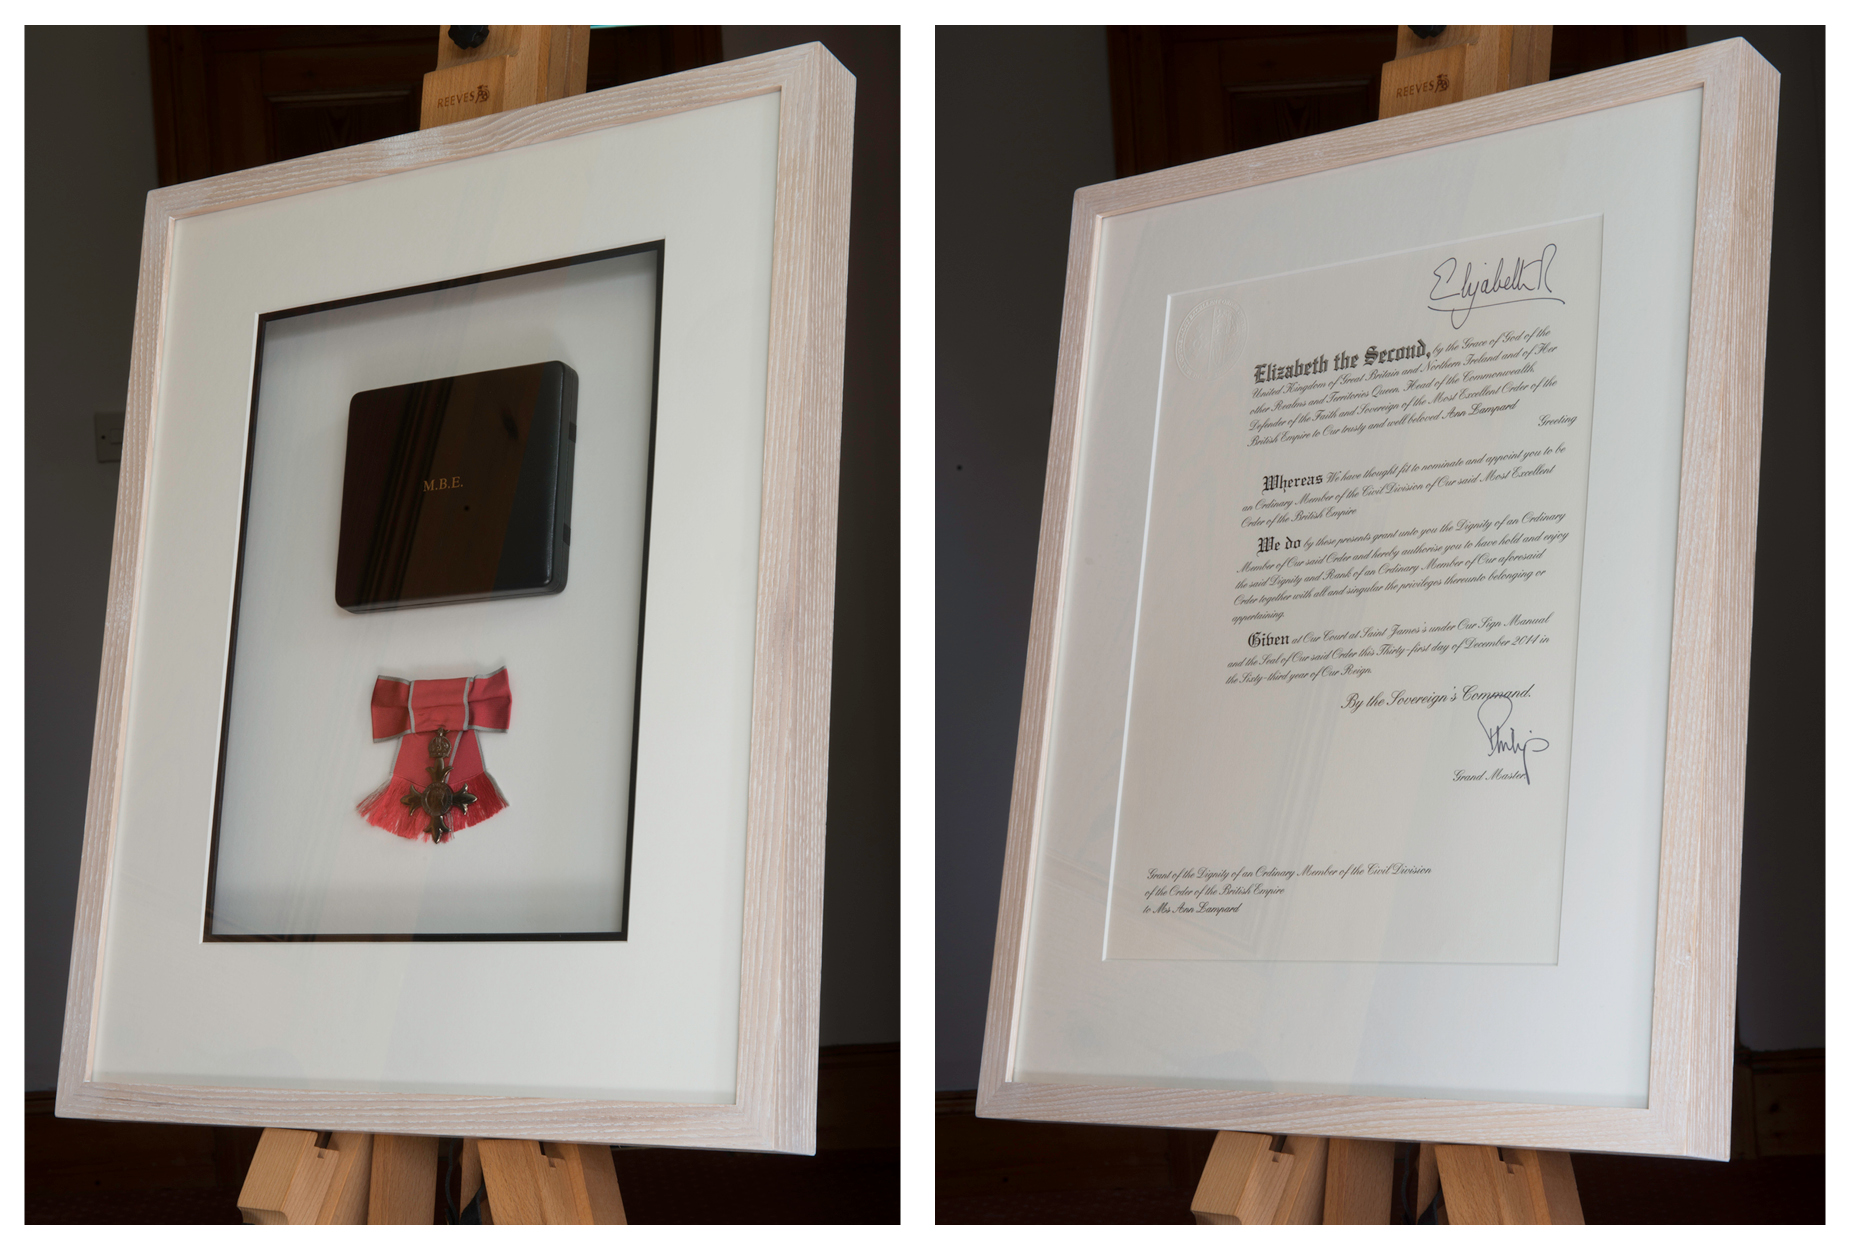 Bespoke box picture framing for treasured objects and certificates custom picture framing for mbe jeuxipadfo Choice Image